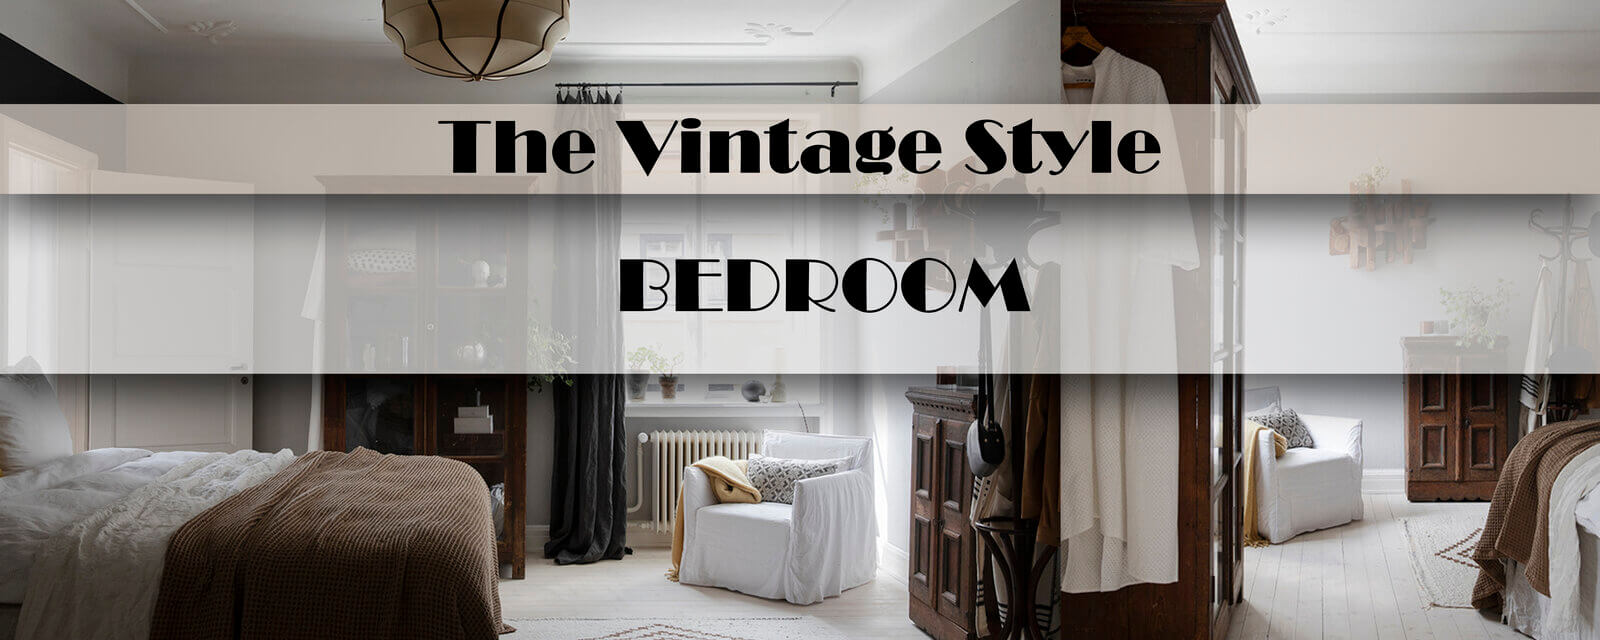 The Vintage Style | Bedroom